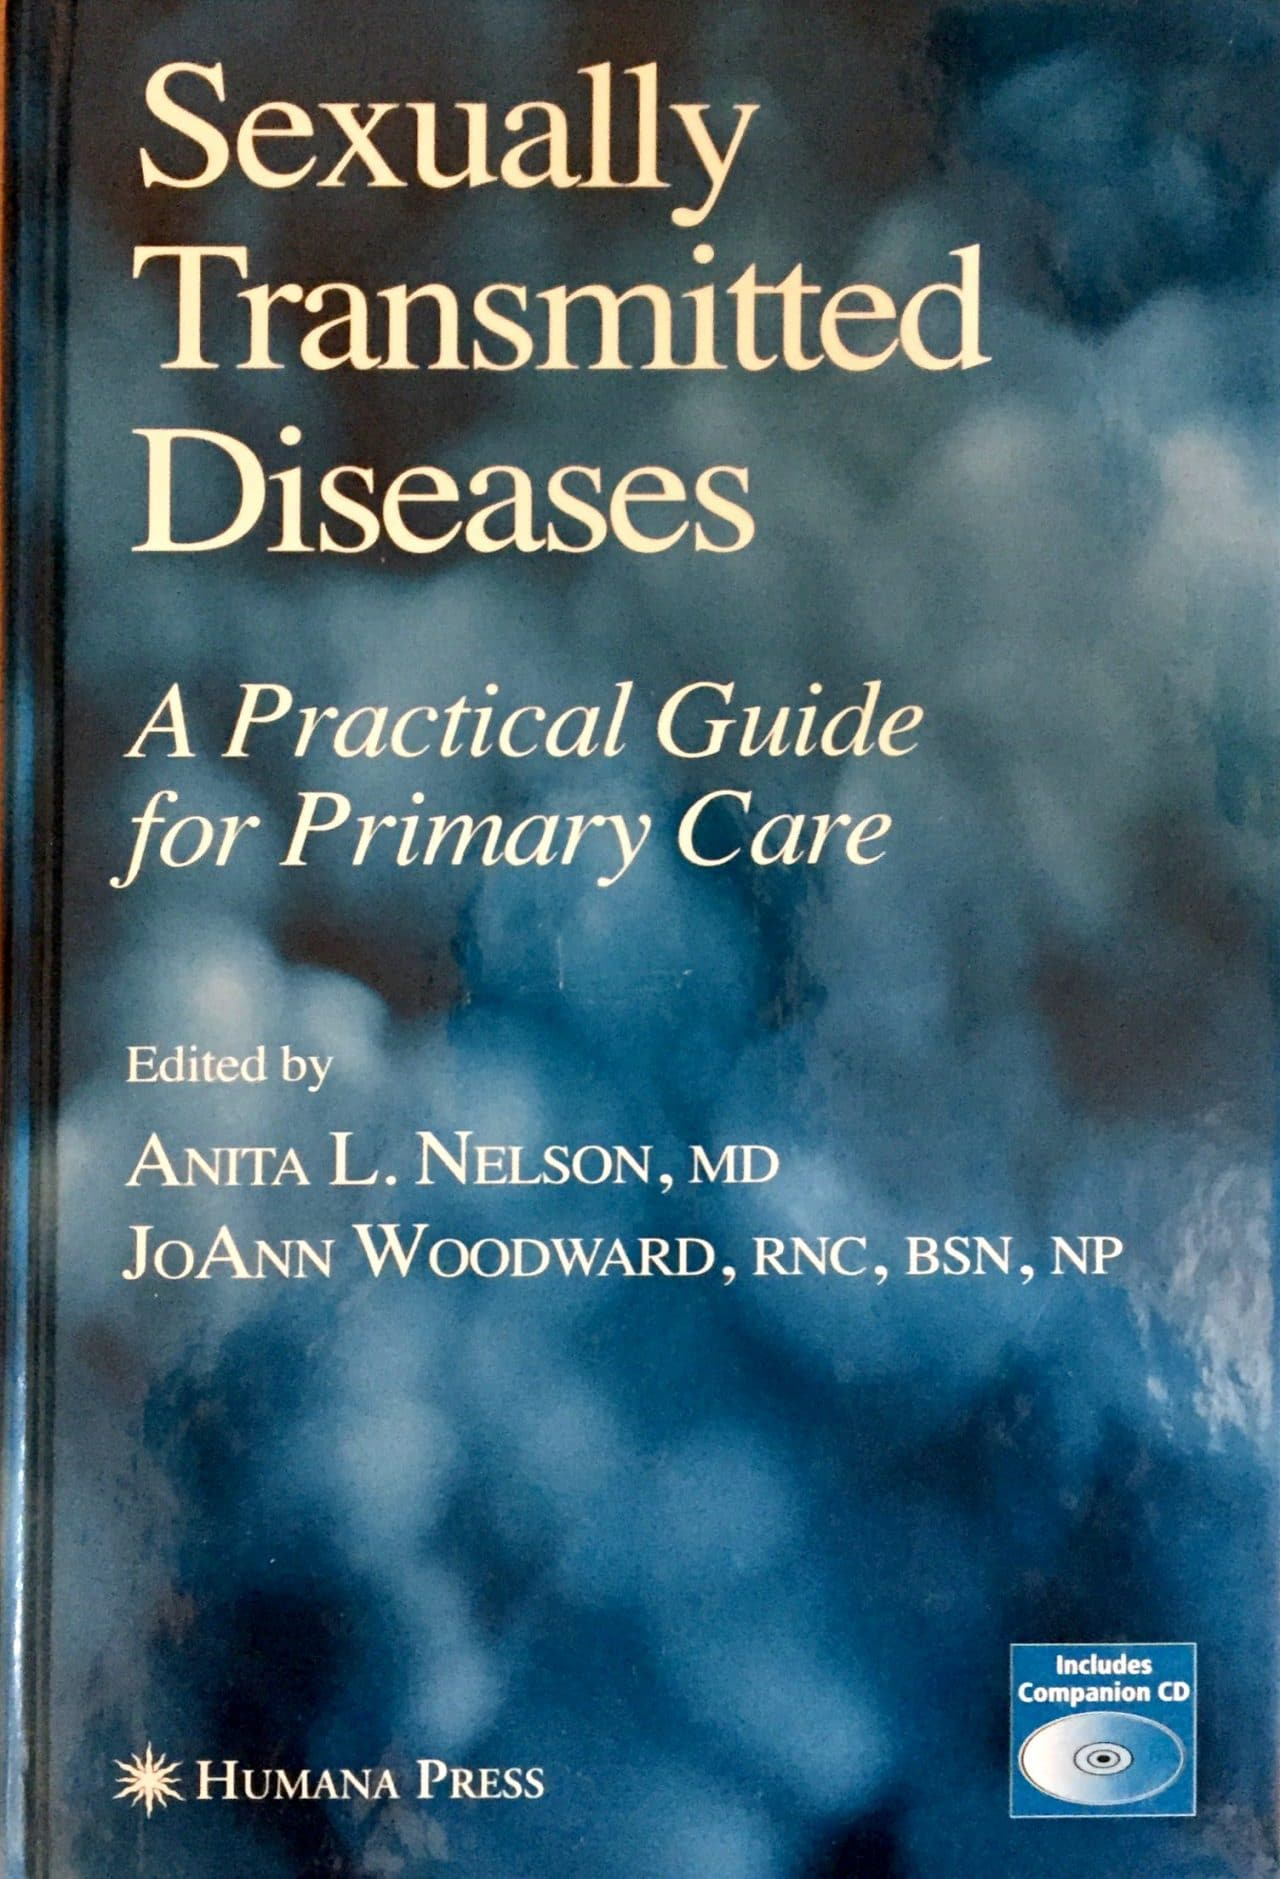 Sexually Transmitted Diseases – A Pratical Guide For Primary Care